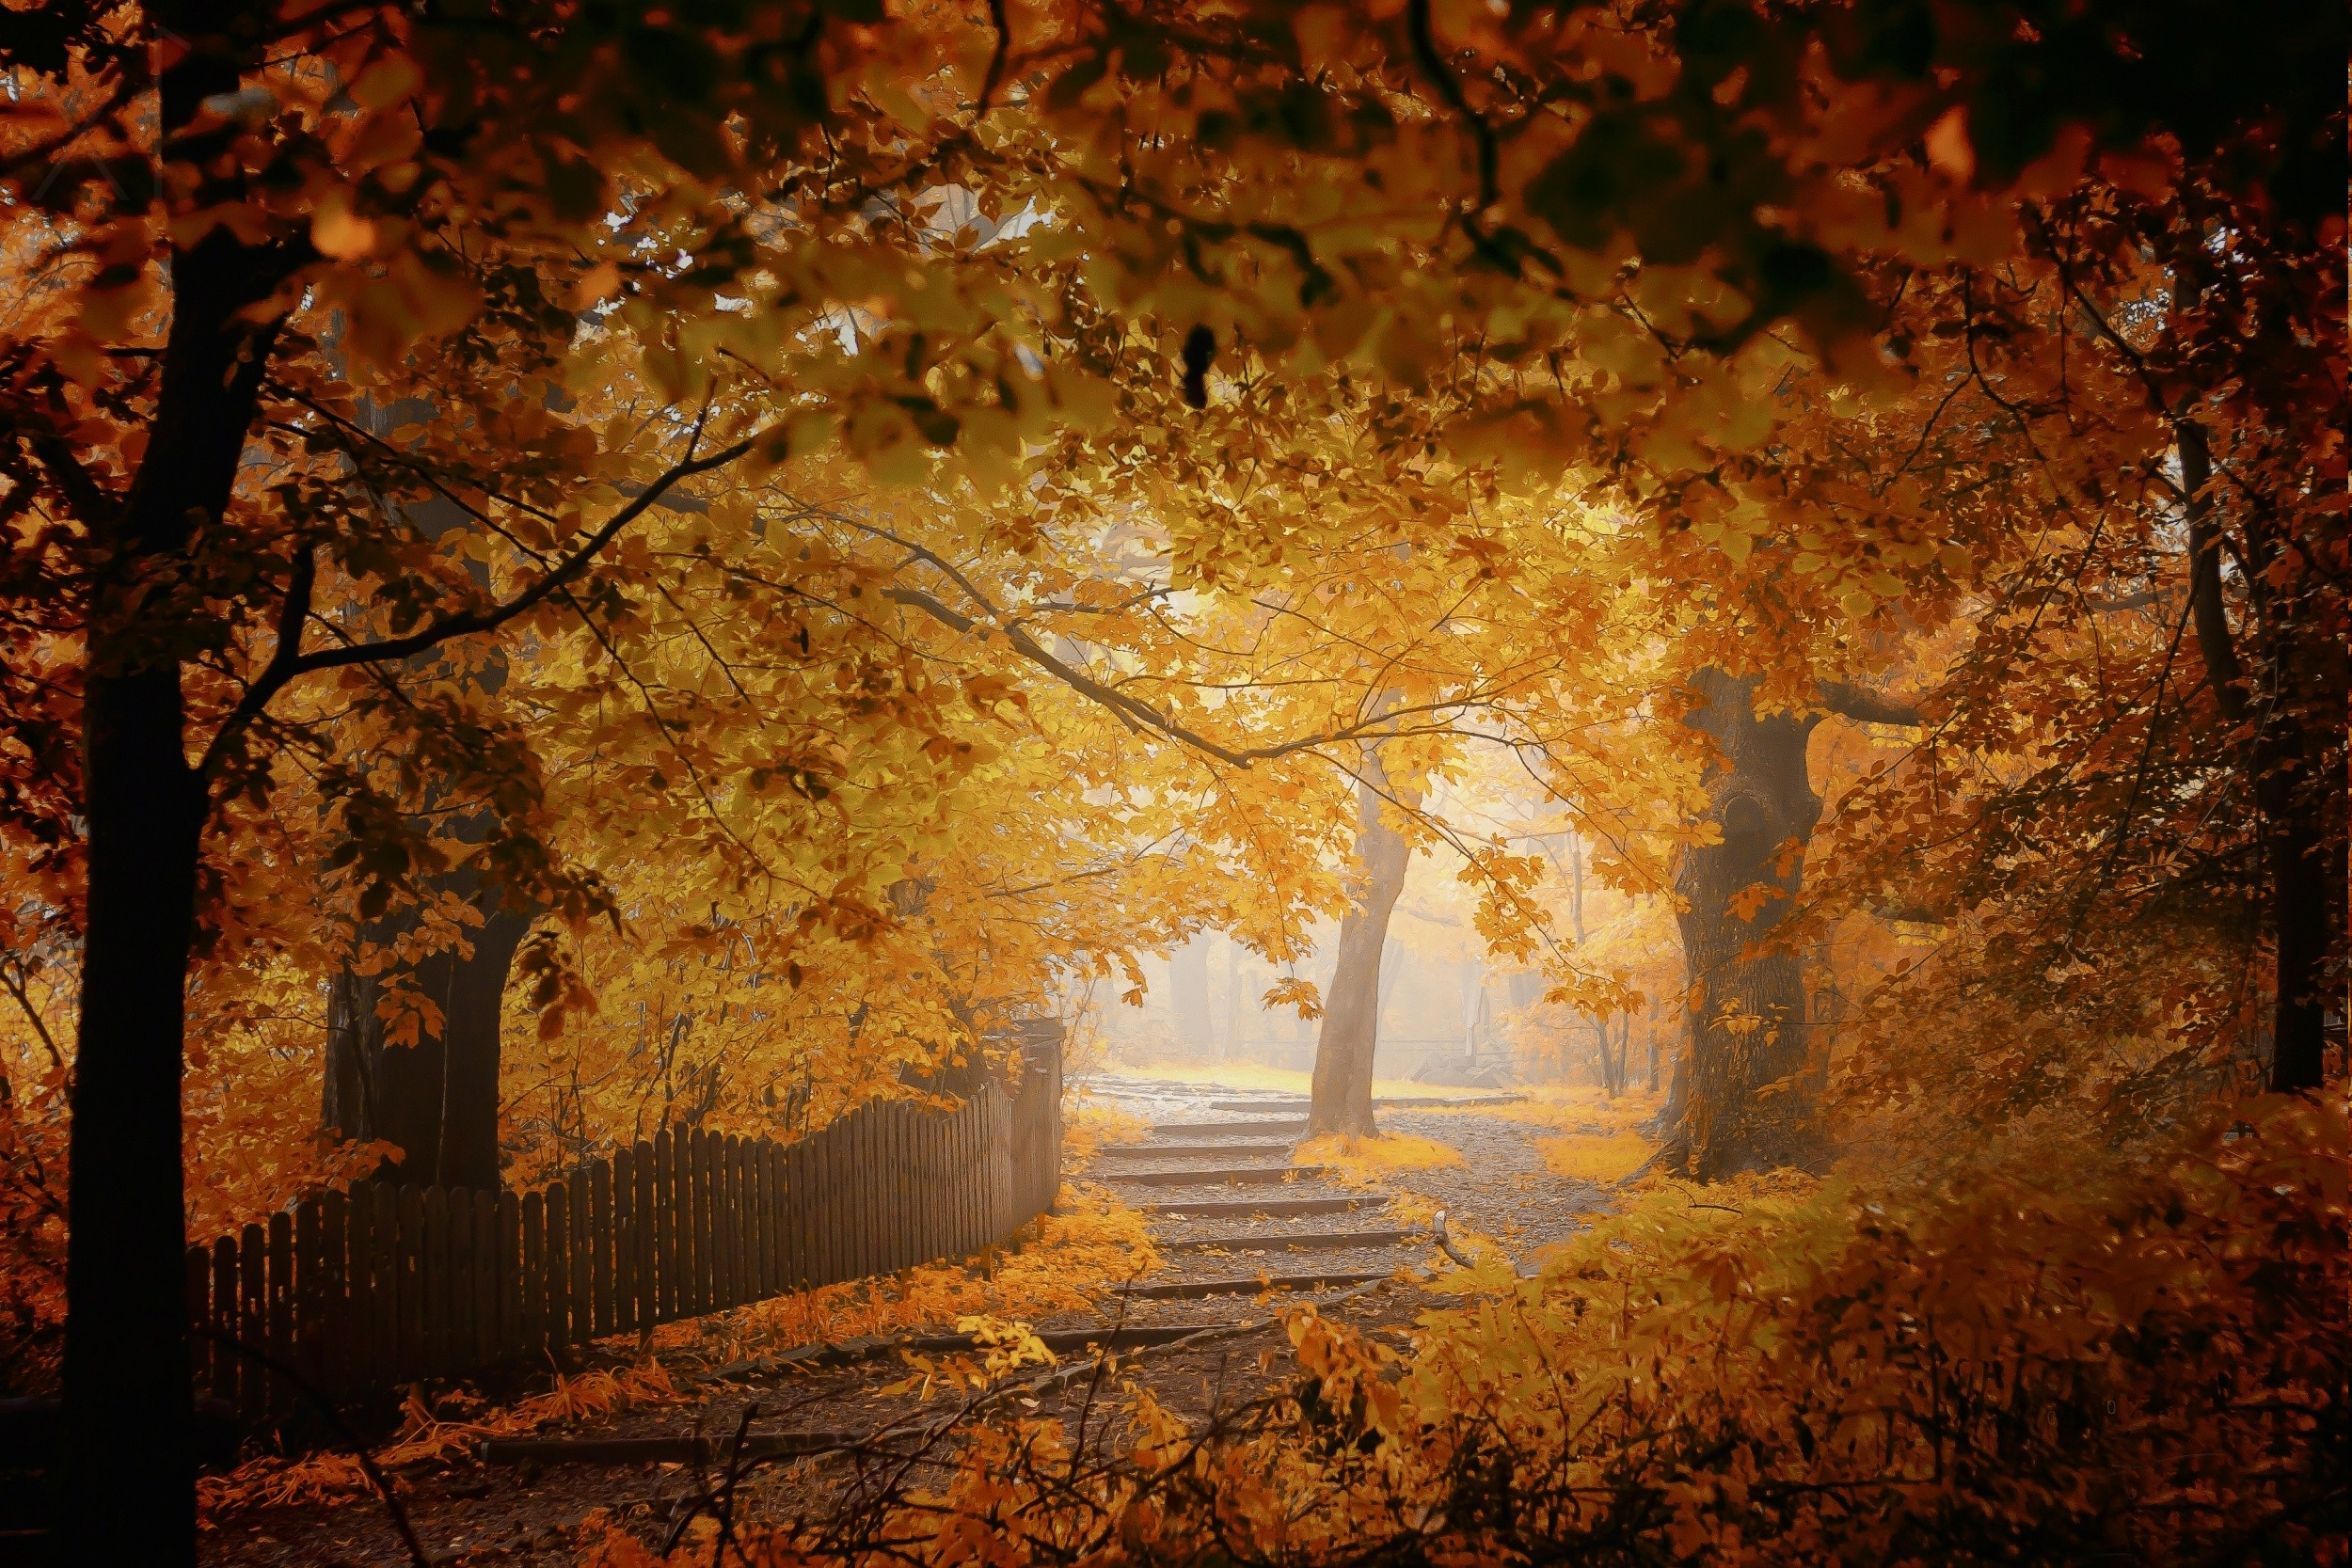 The Fall Movie Wallpaper Fall Mist Fence Walkway Leaves Trees Yellow Orange